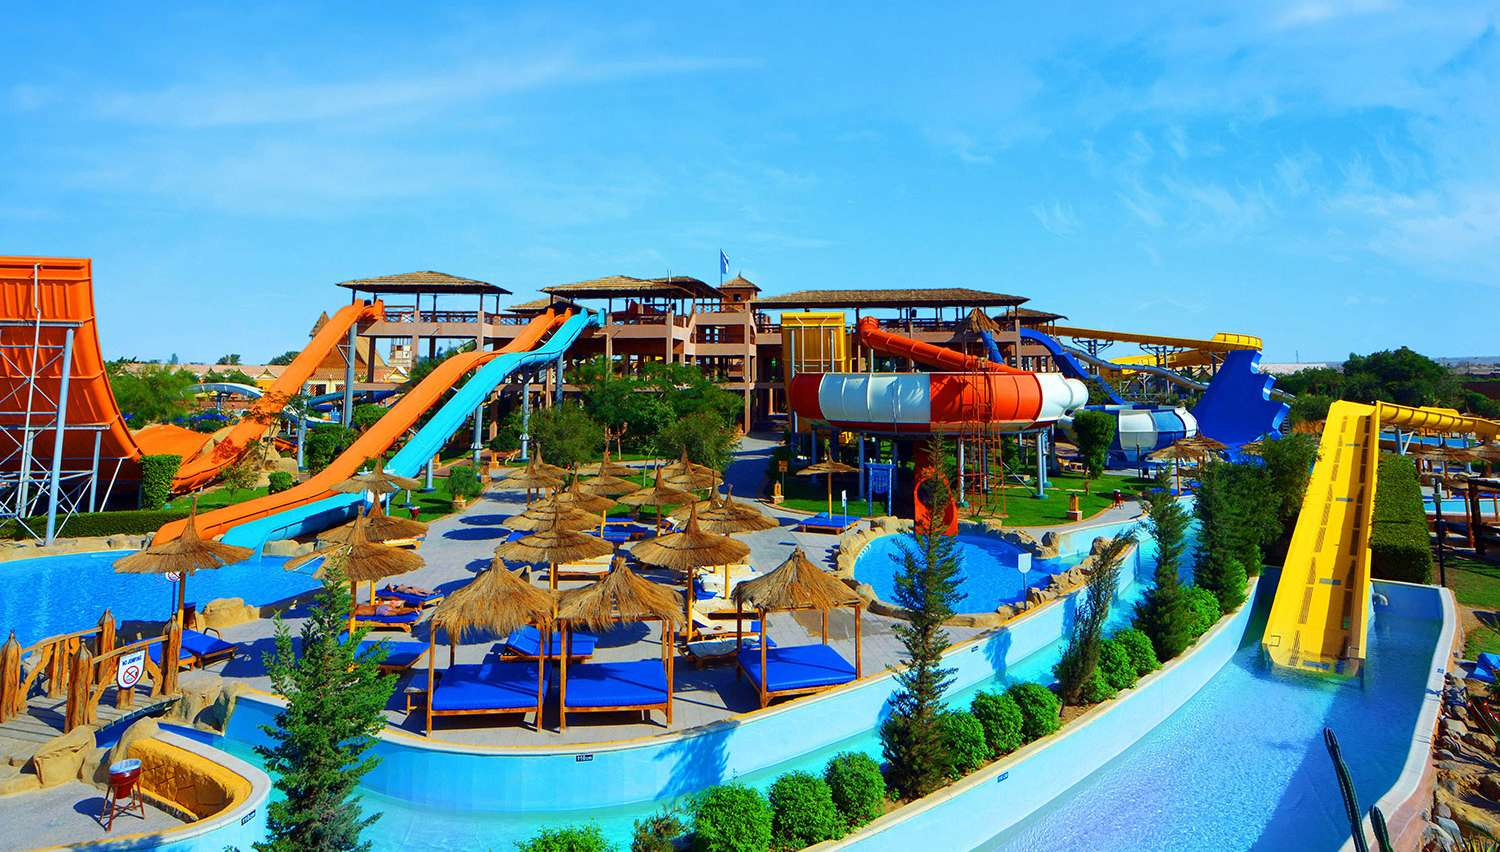 Pickalbatros Jungle Aqua Park (Hurgada, Ēģipte)